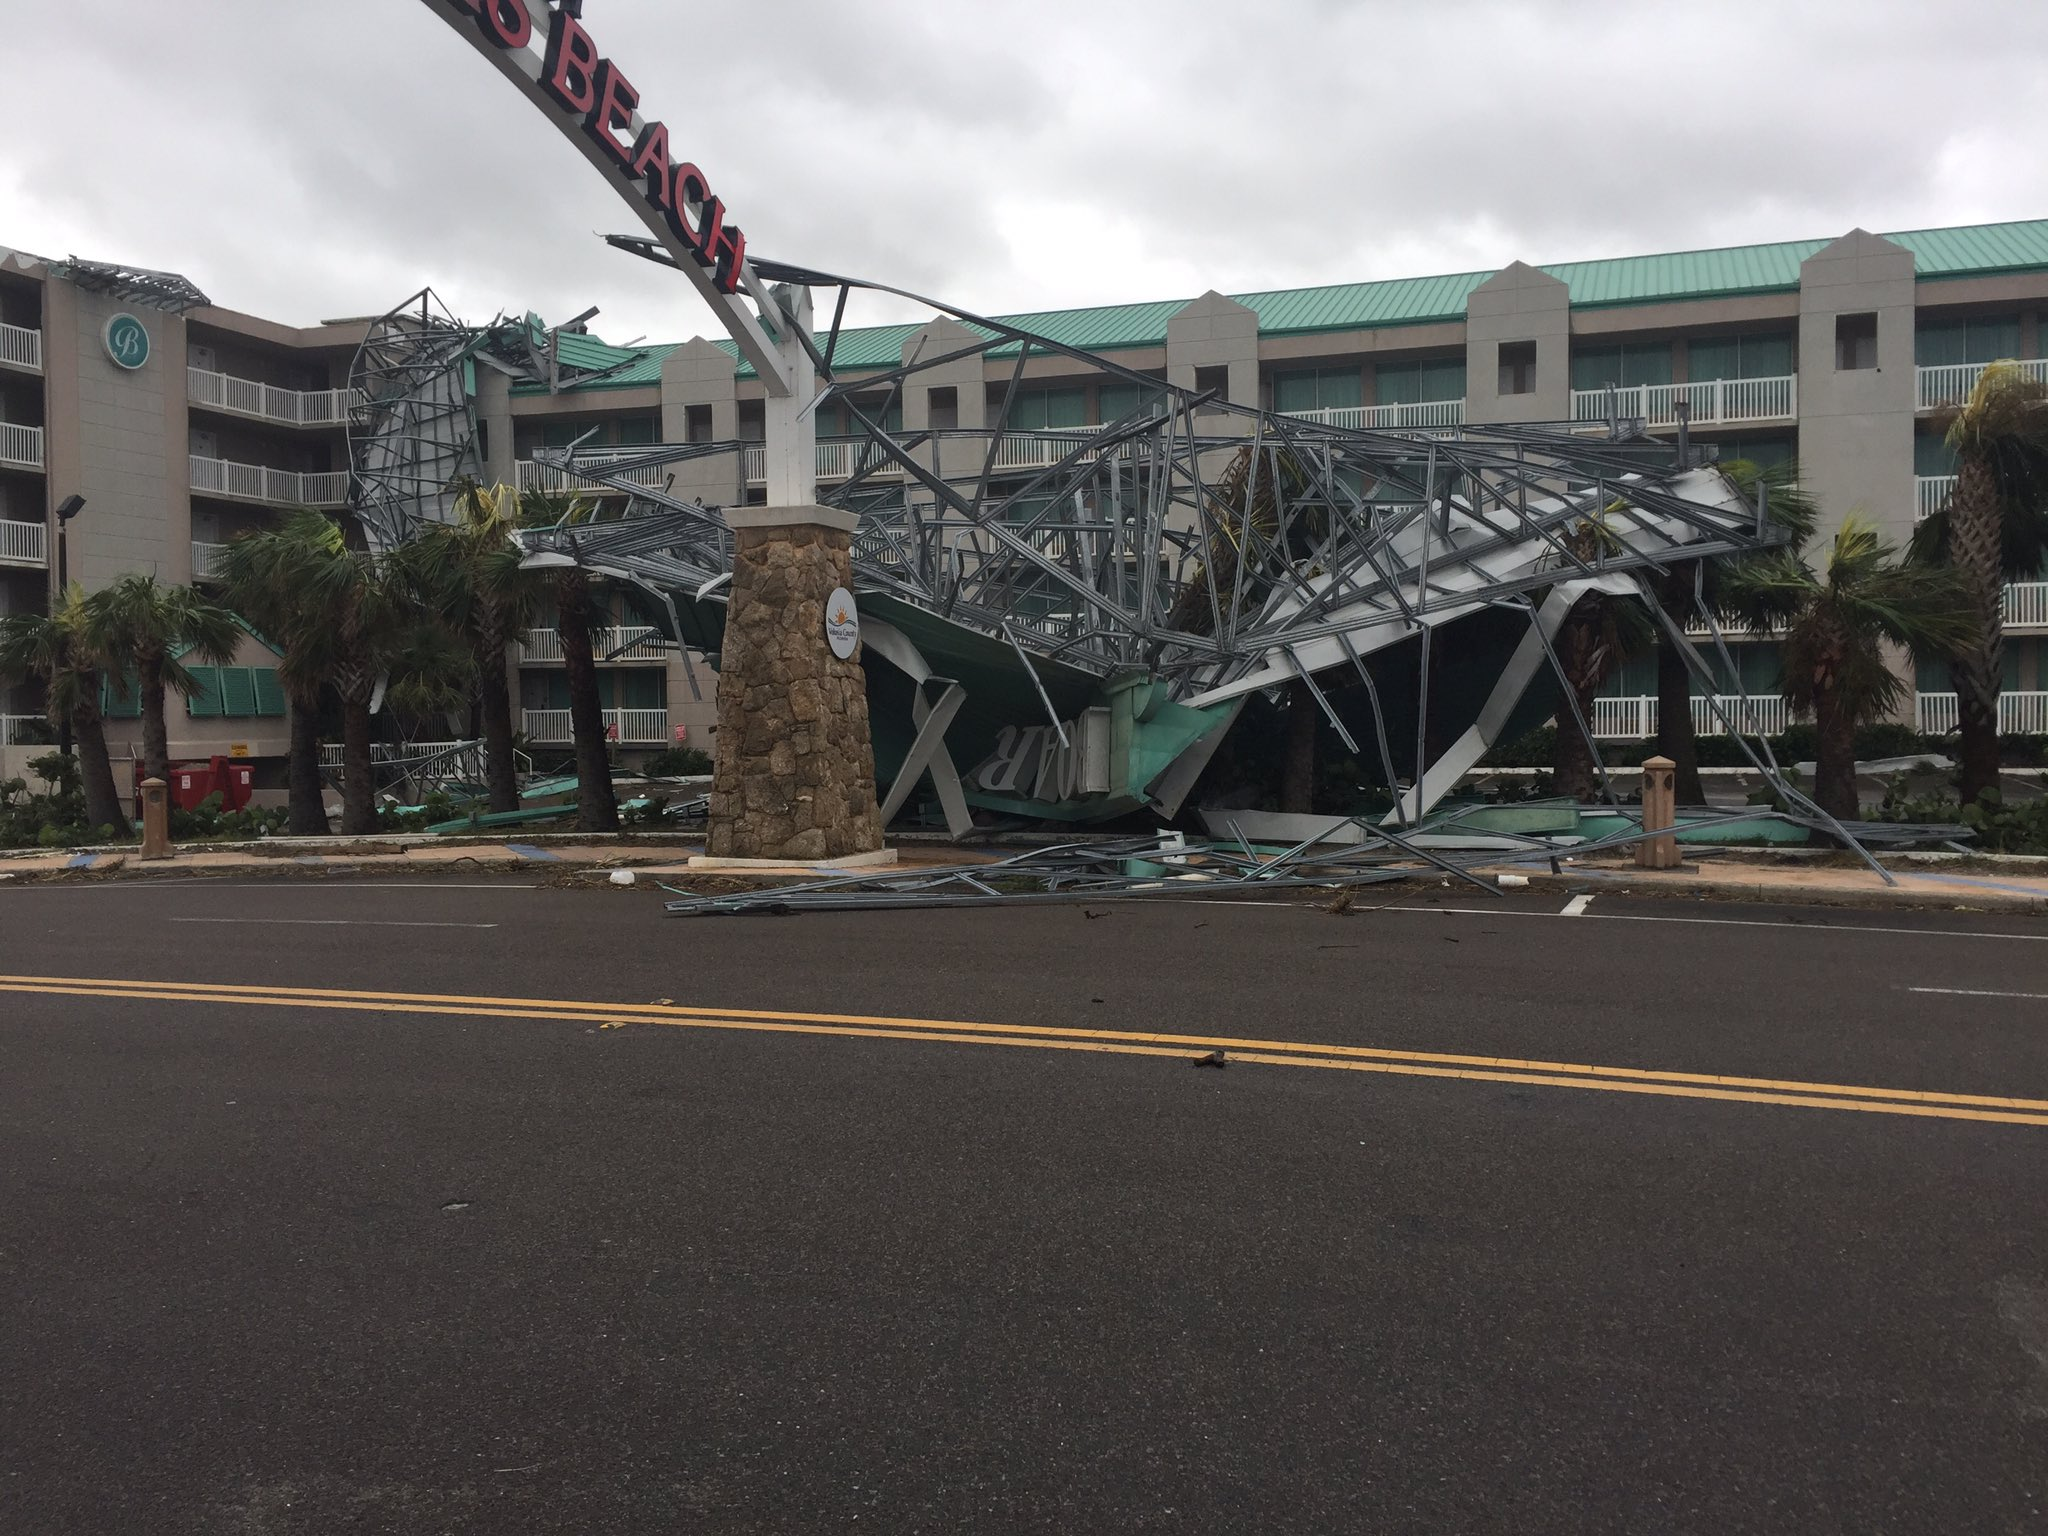 "<div class=""meta image-caption""><div class=""origin-logo origin-image none""><span>none</span></div><span class=""caption-text"">Damage is shown near the ''World's Most Famous Beach'' sign in Daytona Beach on Monday. (Ty Russell/Daytona Beach)</span></div>"